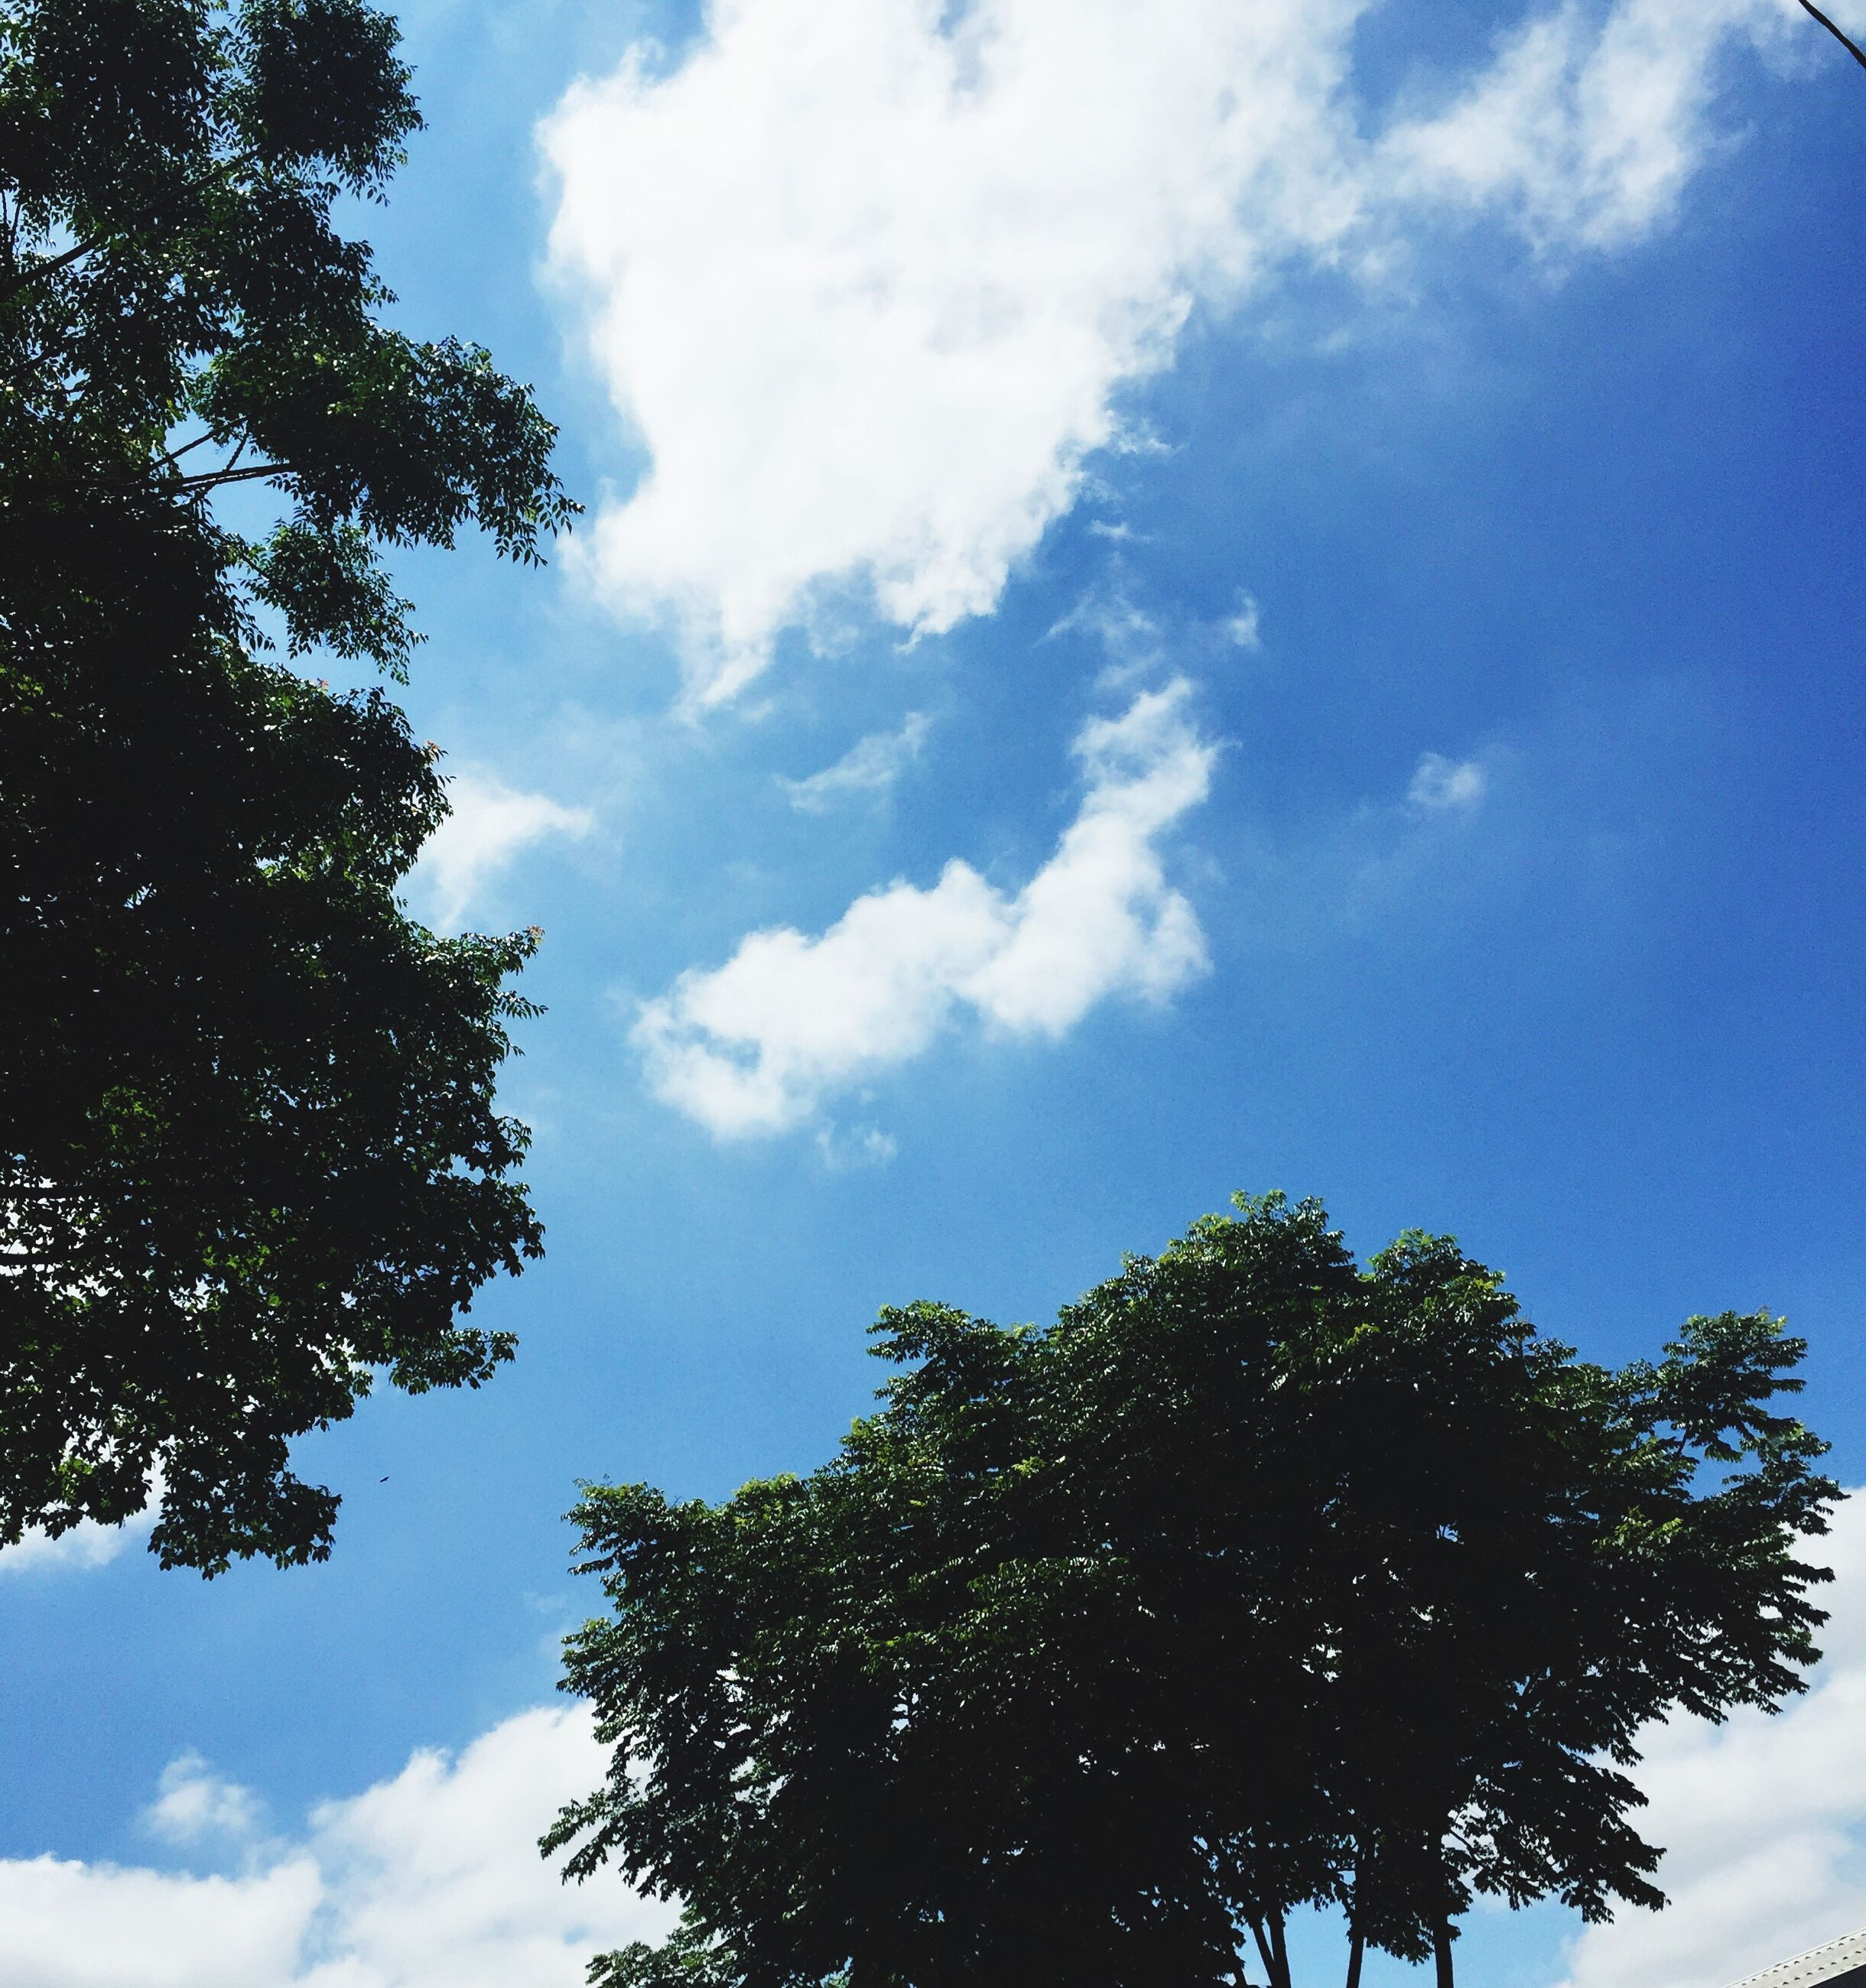 tree, low angle view, sky, nature, growth, cloud - sky, no people, day, beauty in nature, leaf, outdoors, treetop